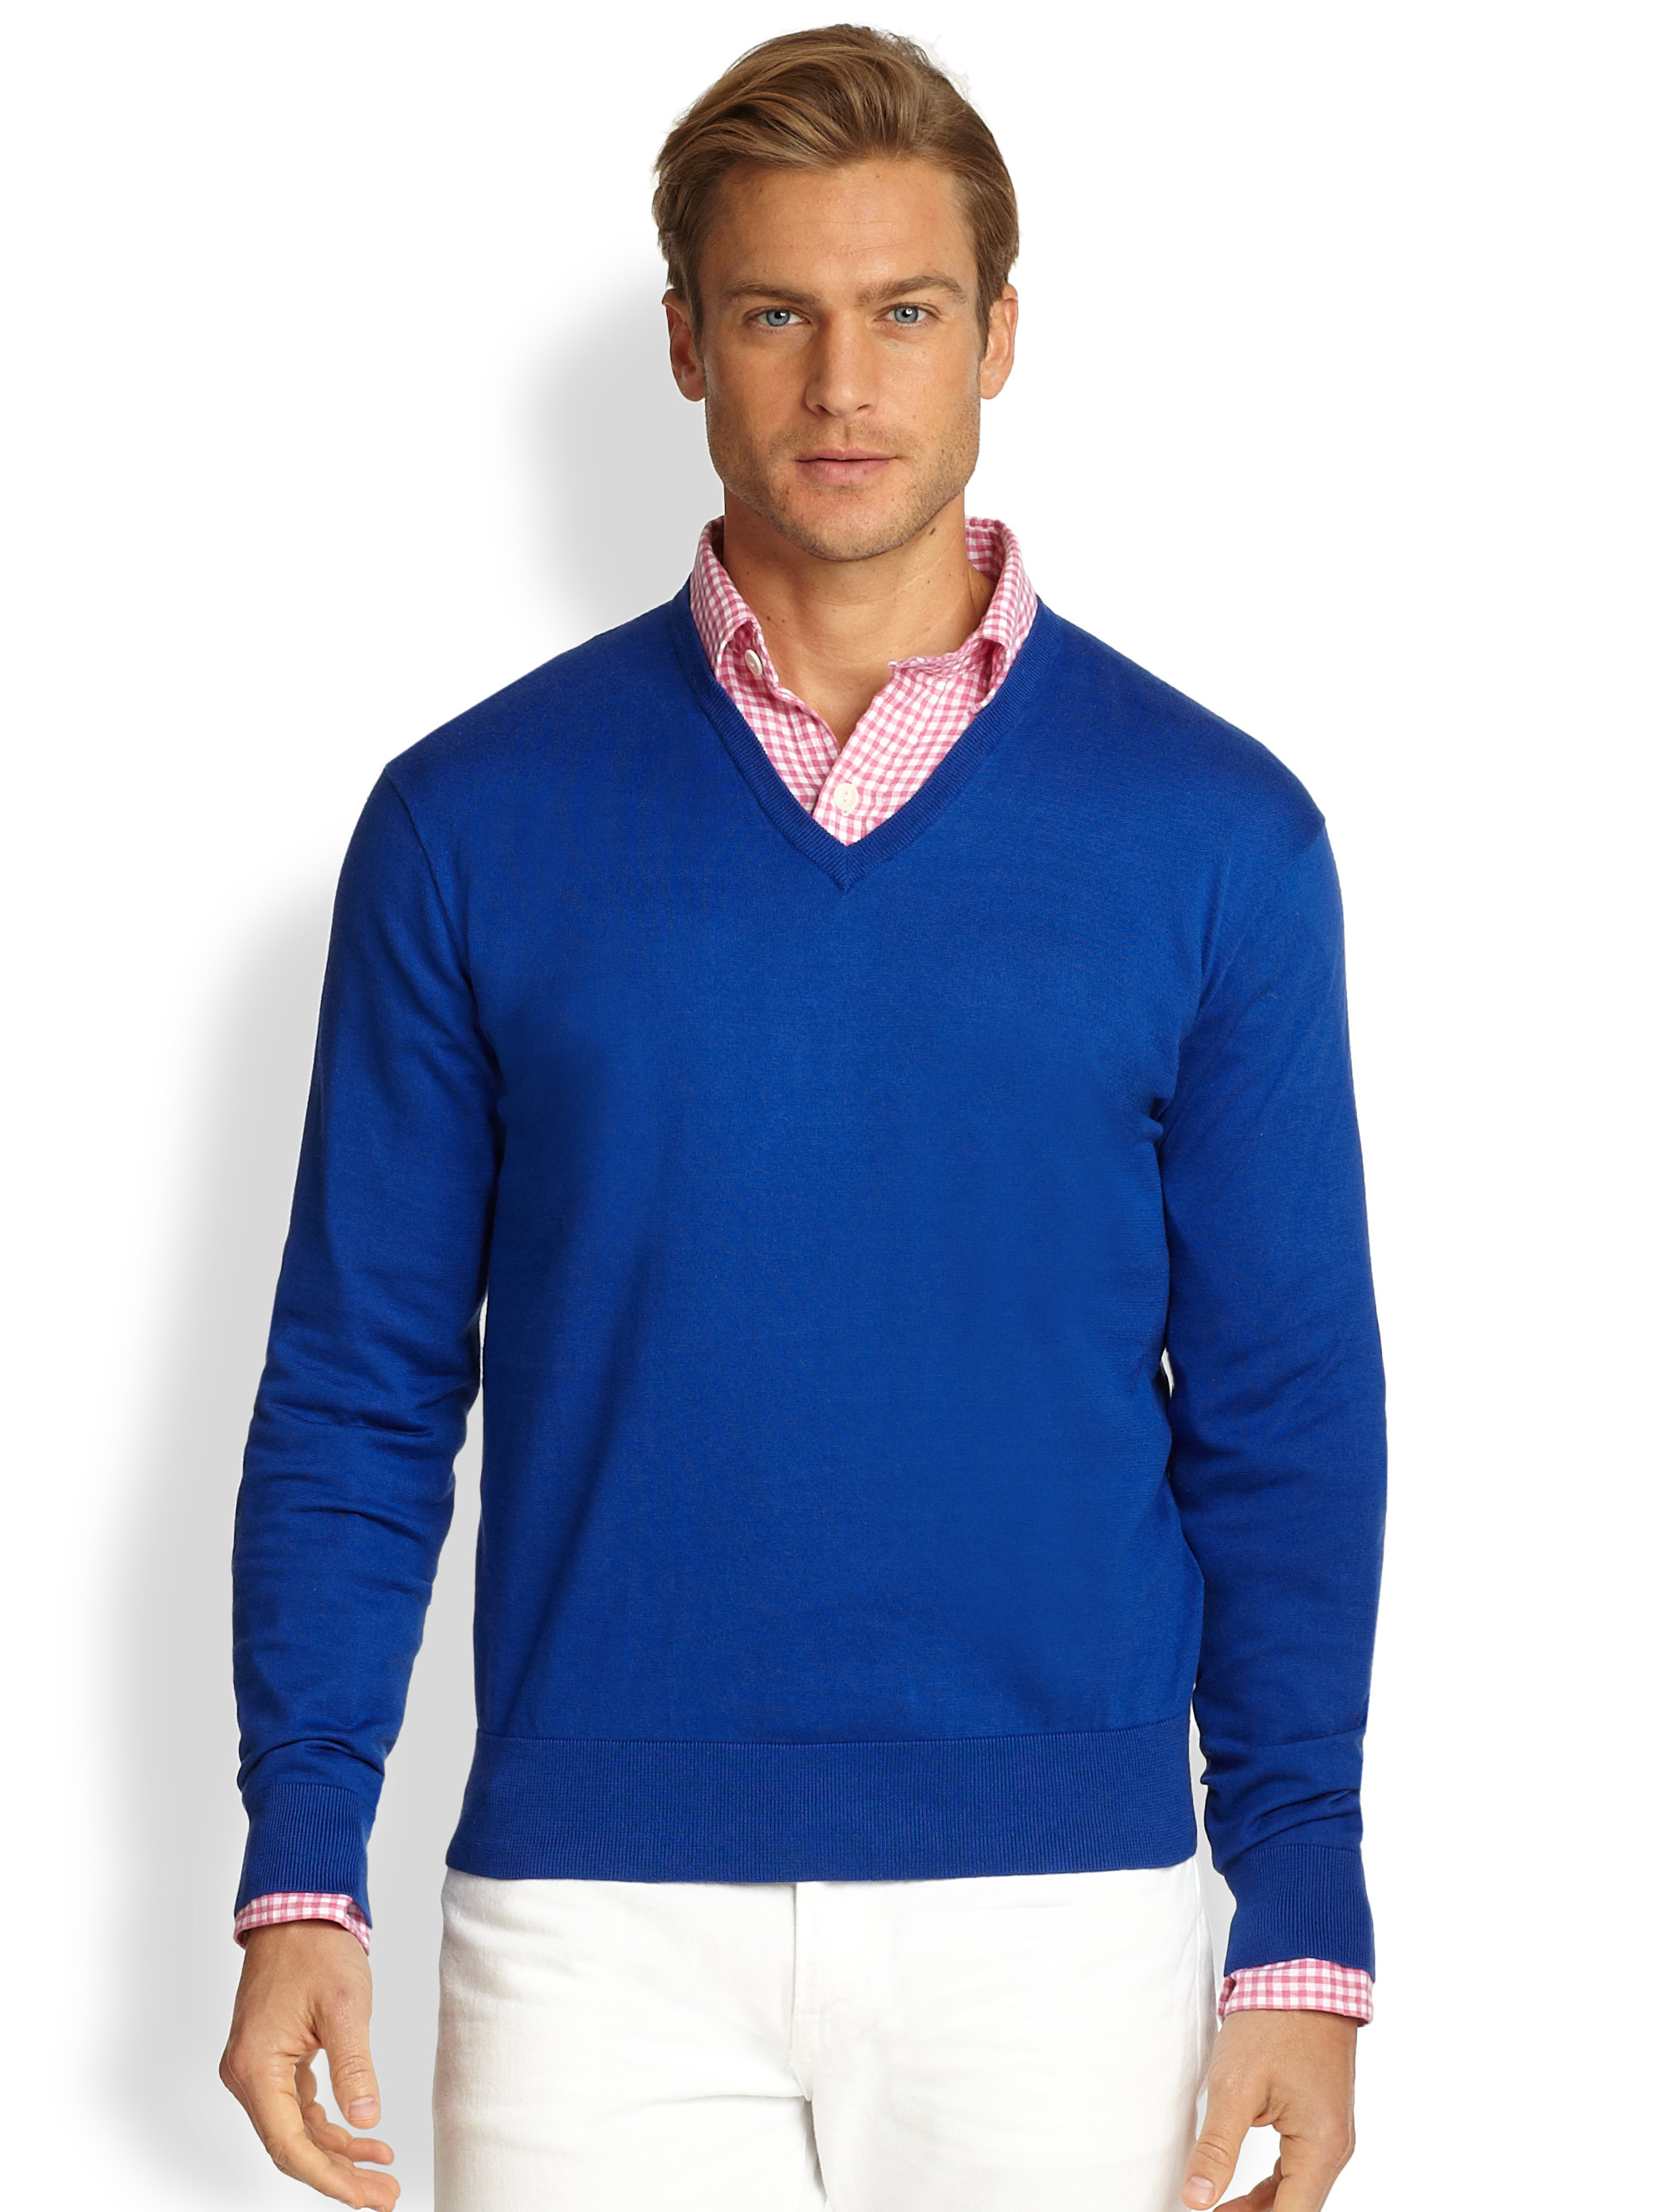 polo ralph lauren cotton v neck sweater in blue for men lyst. Black Bedroom Furniture Sets. Home Design Ideas